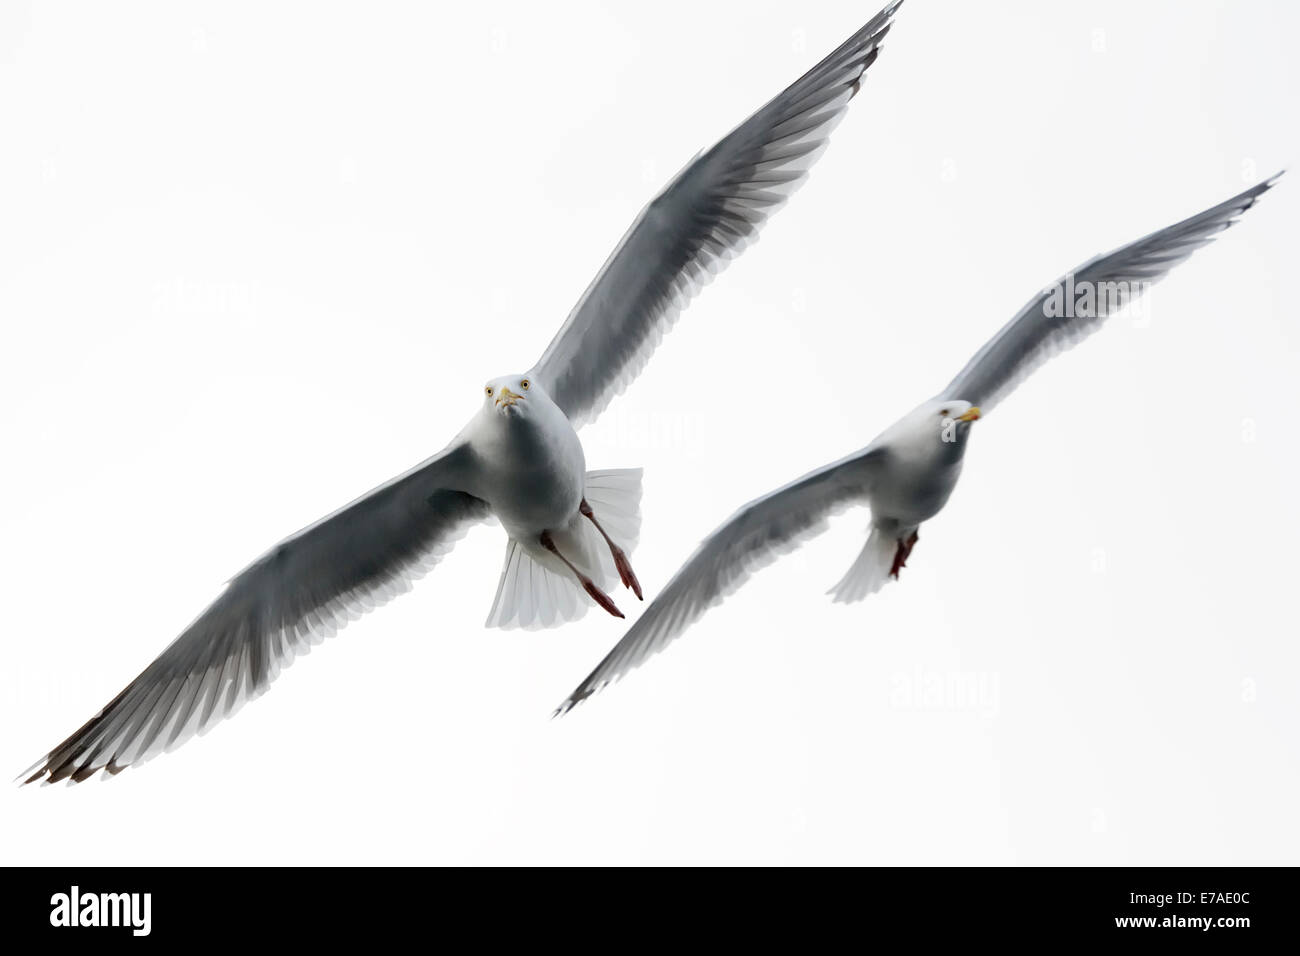 Herring gull (Larus argentatus) flying against white sky with second gull in background. - Stock Image